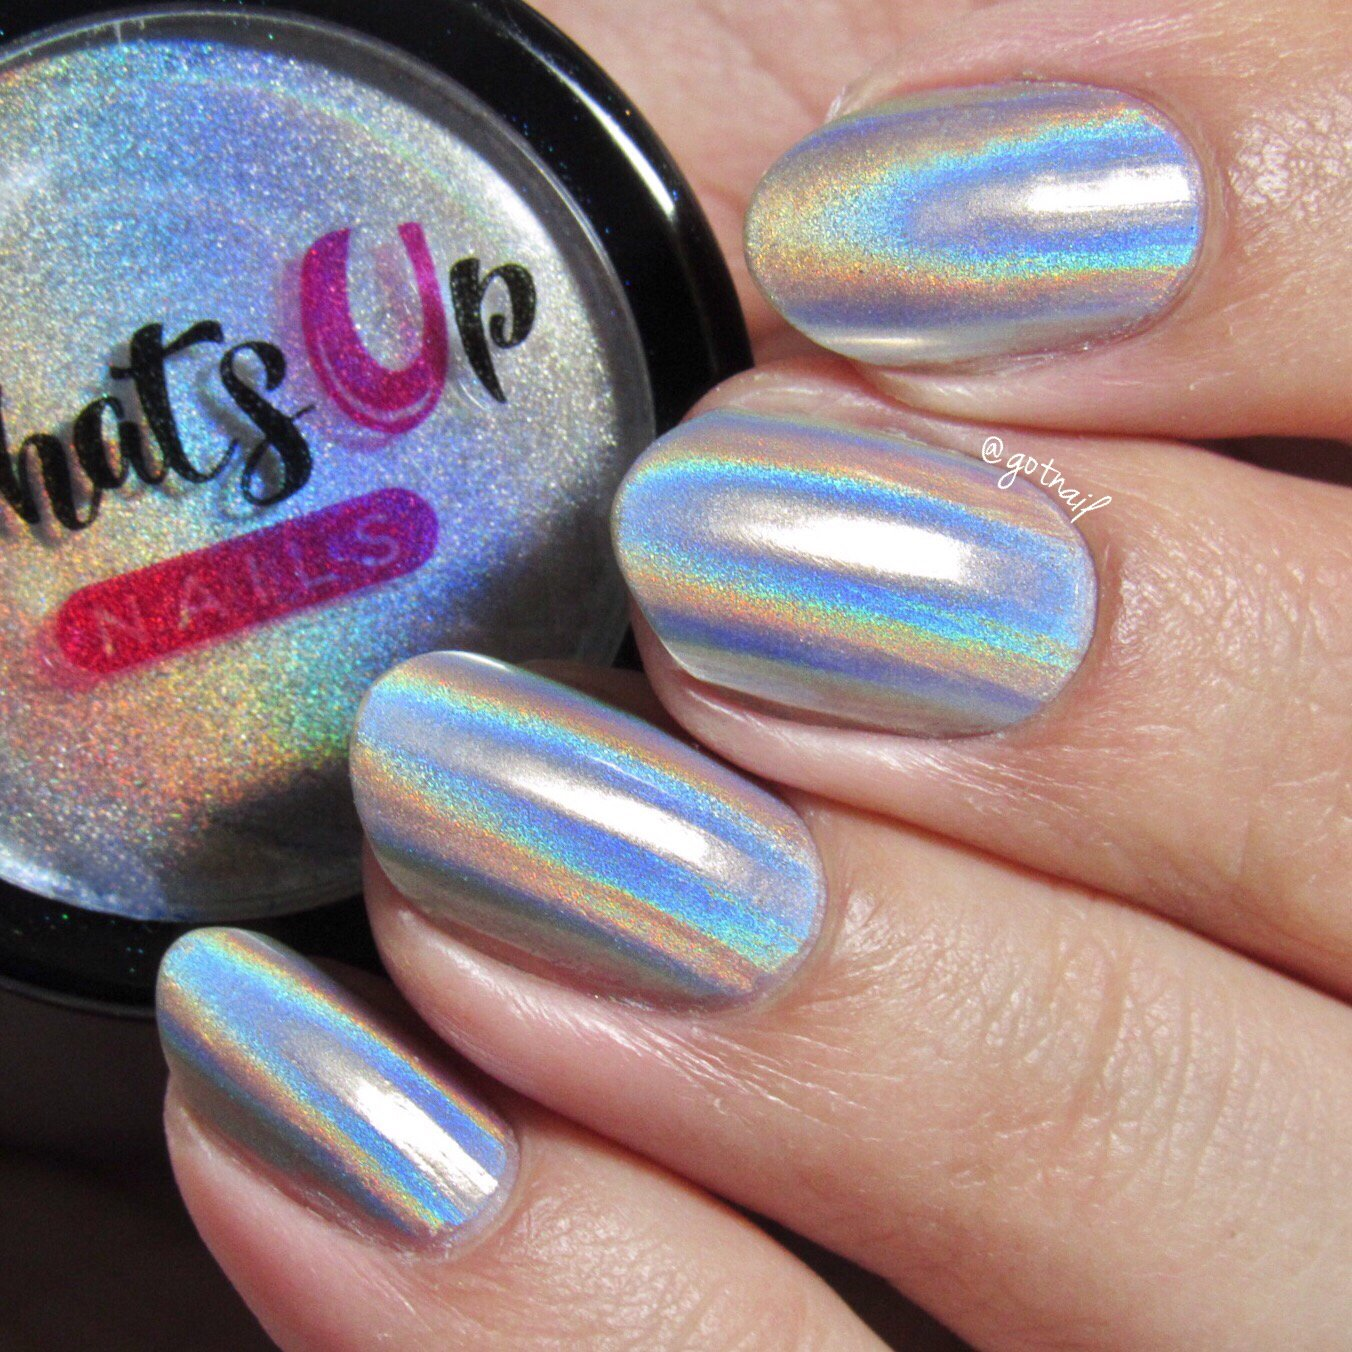 Buy Holographic Powder: Whats Up Nails - Holographic Powder For ...